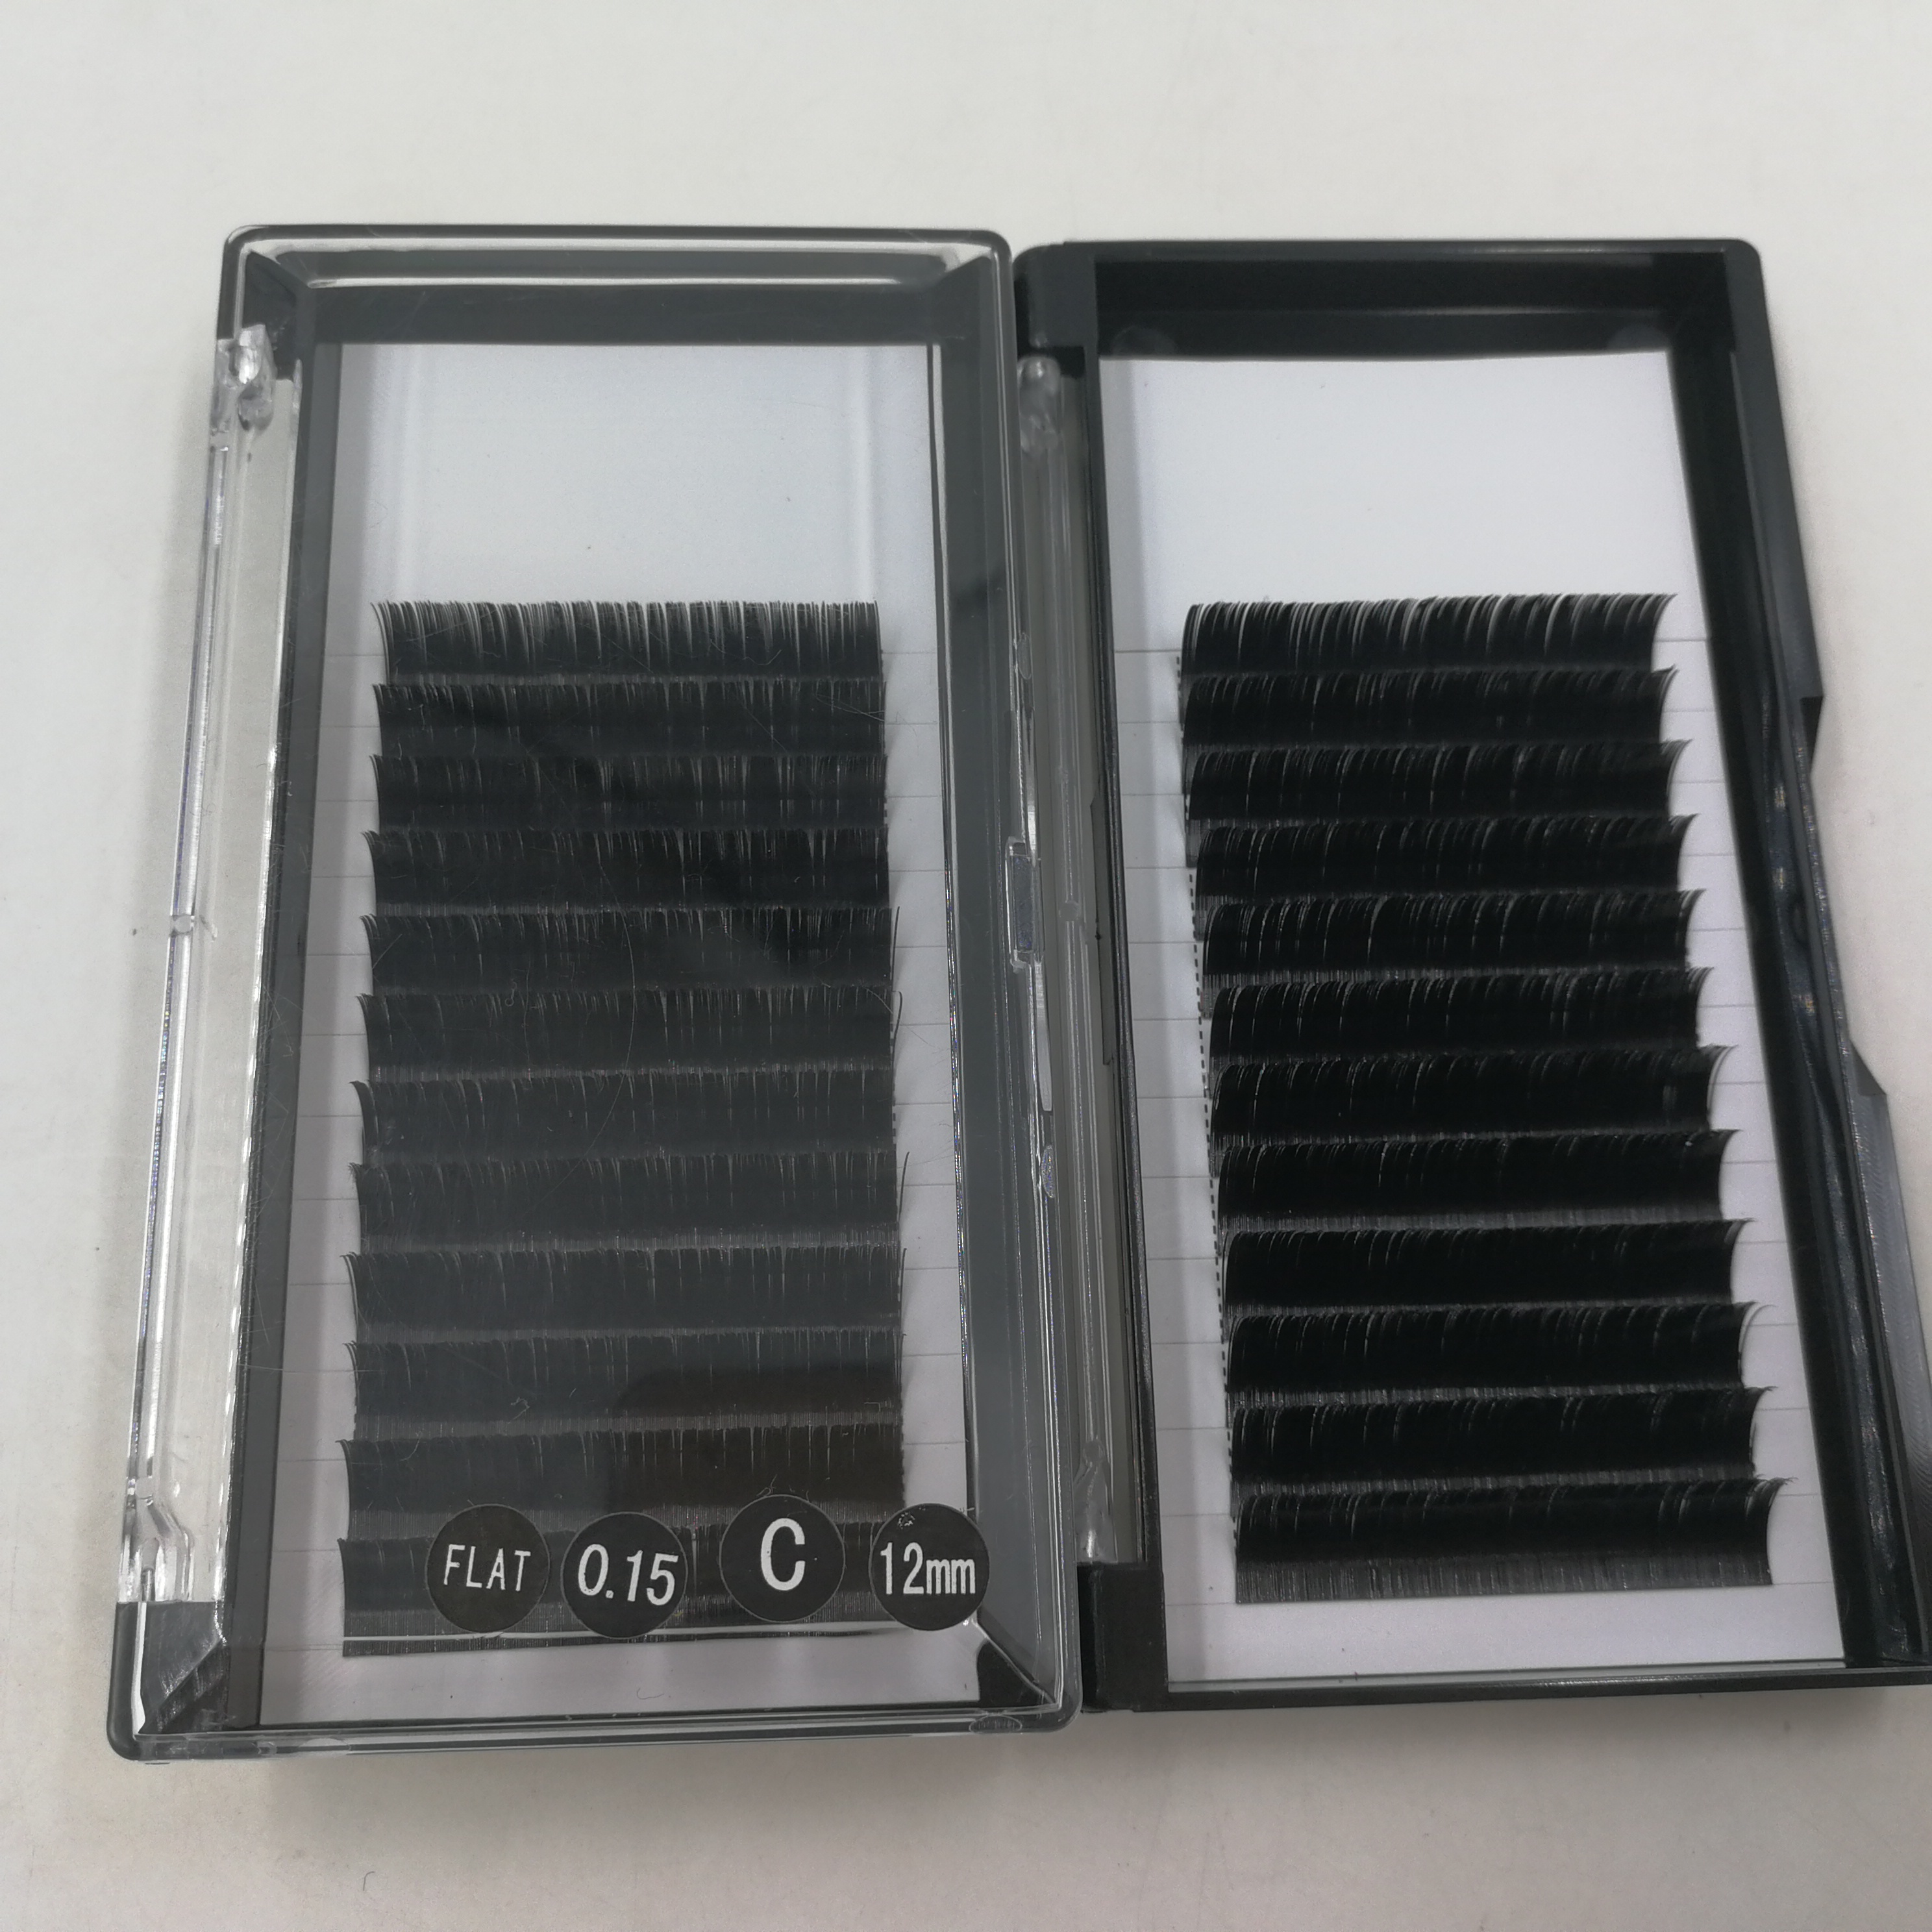 0.15mm &amp; 0.20mm ellipse <strong>flat</strong> shape false lashes split eyelash extensions